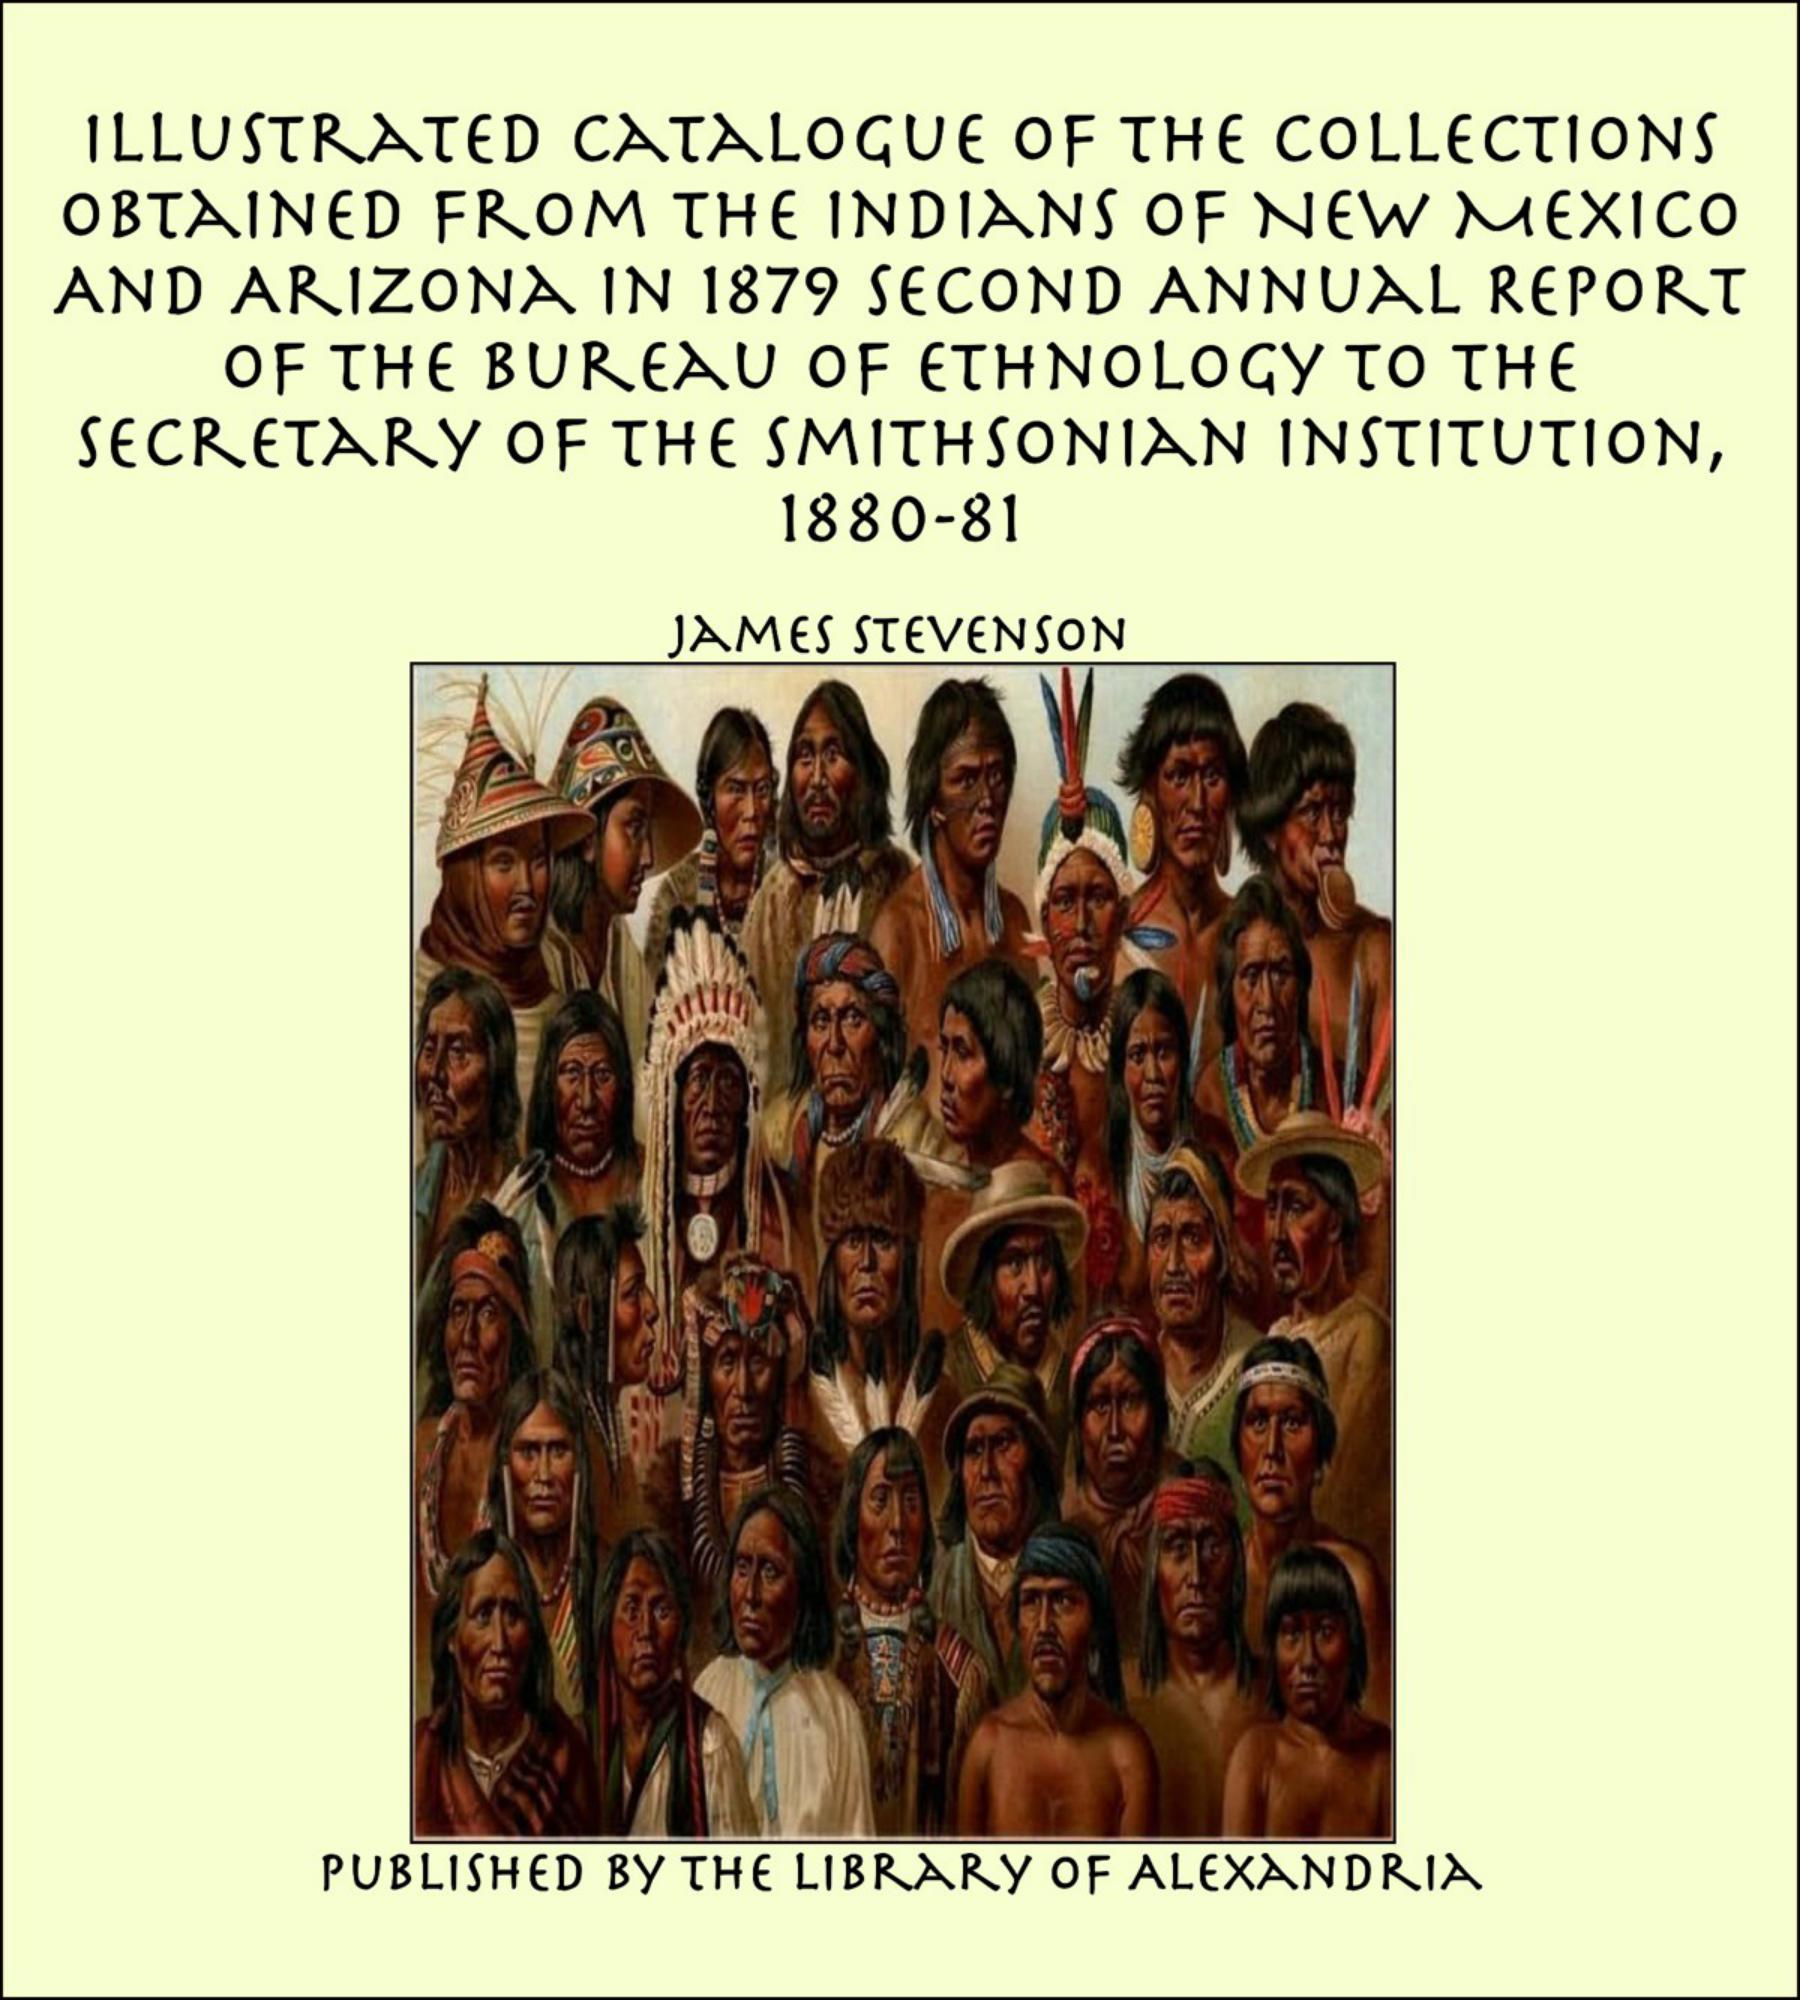 James Stevenson - Illustrated Catalogue of The Collections Obtained From The Indians of New Mexico And Arizona In 1879 Second Annual Report of the Bureau of Ethnology to the Secretary of the Smithsonian Institution, 1880-81